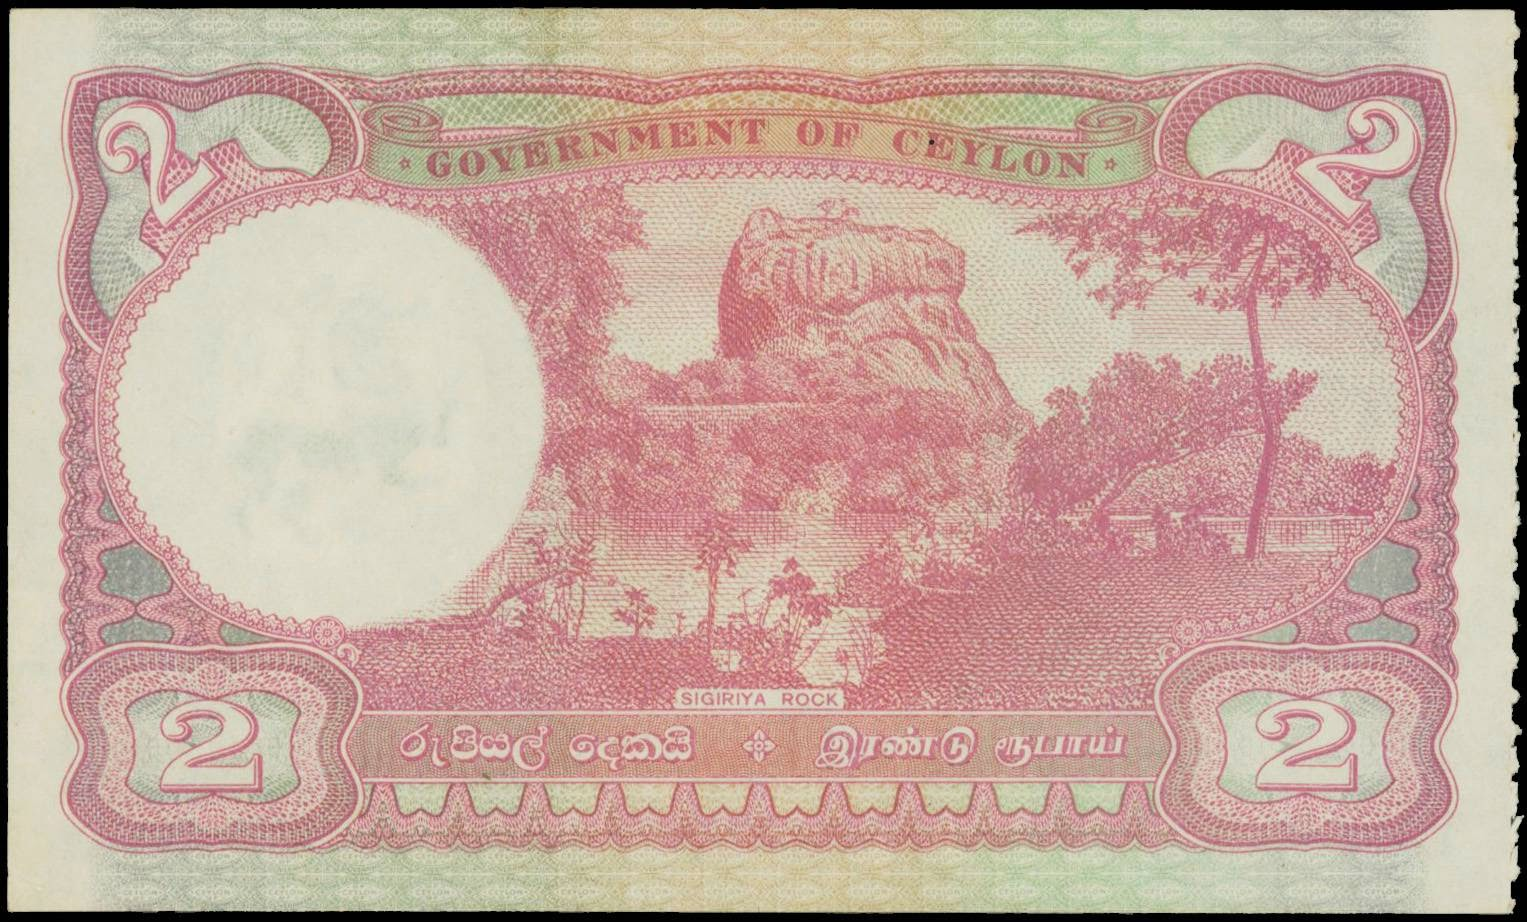 Ceylon currency 2 Rupees note 1949